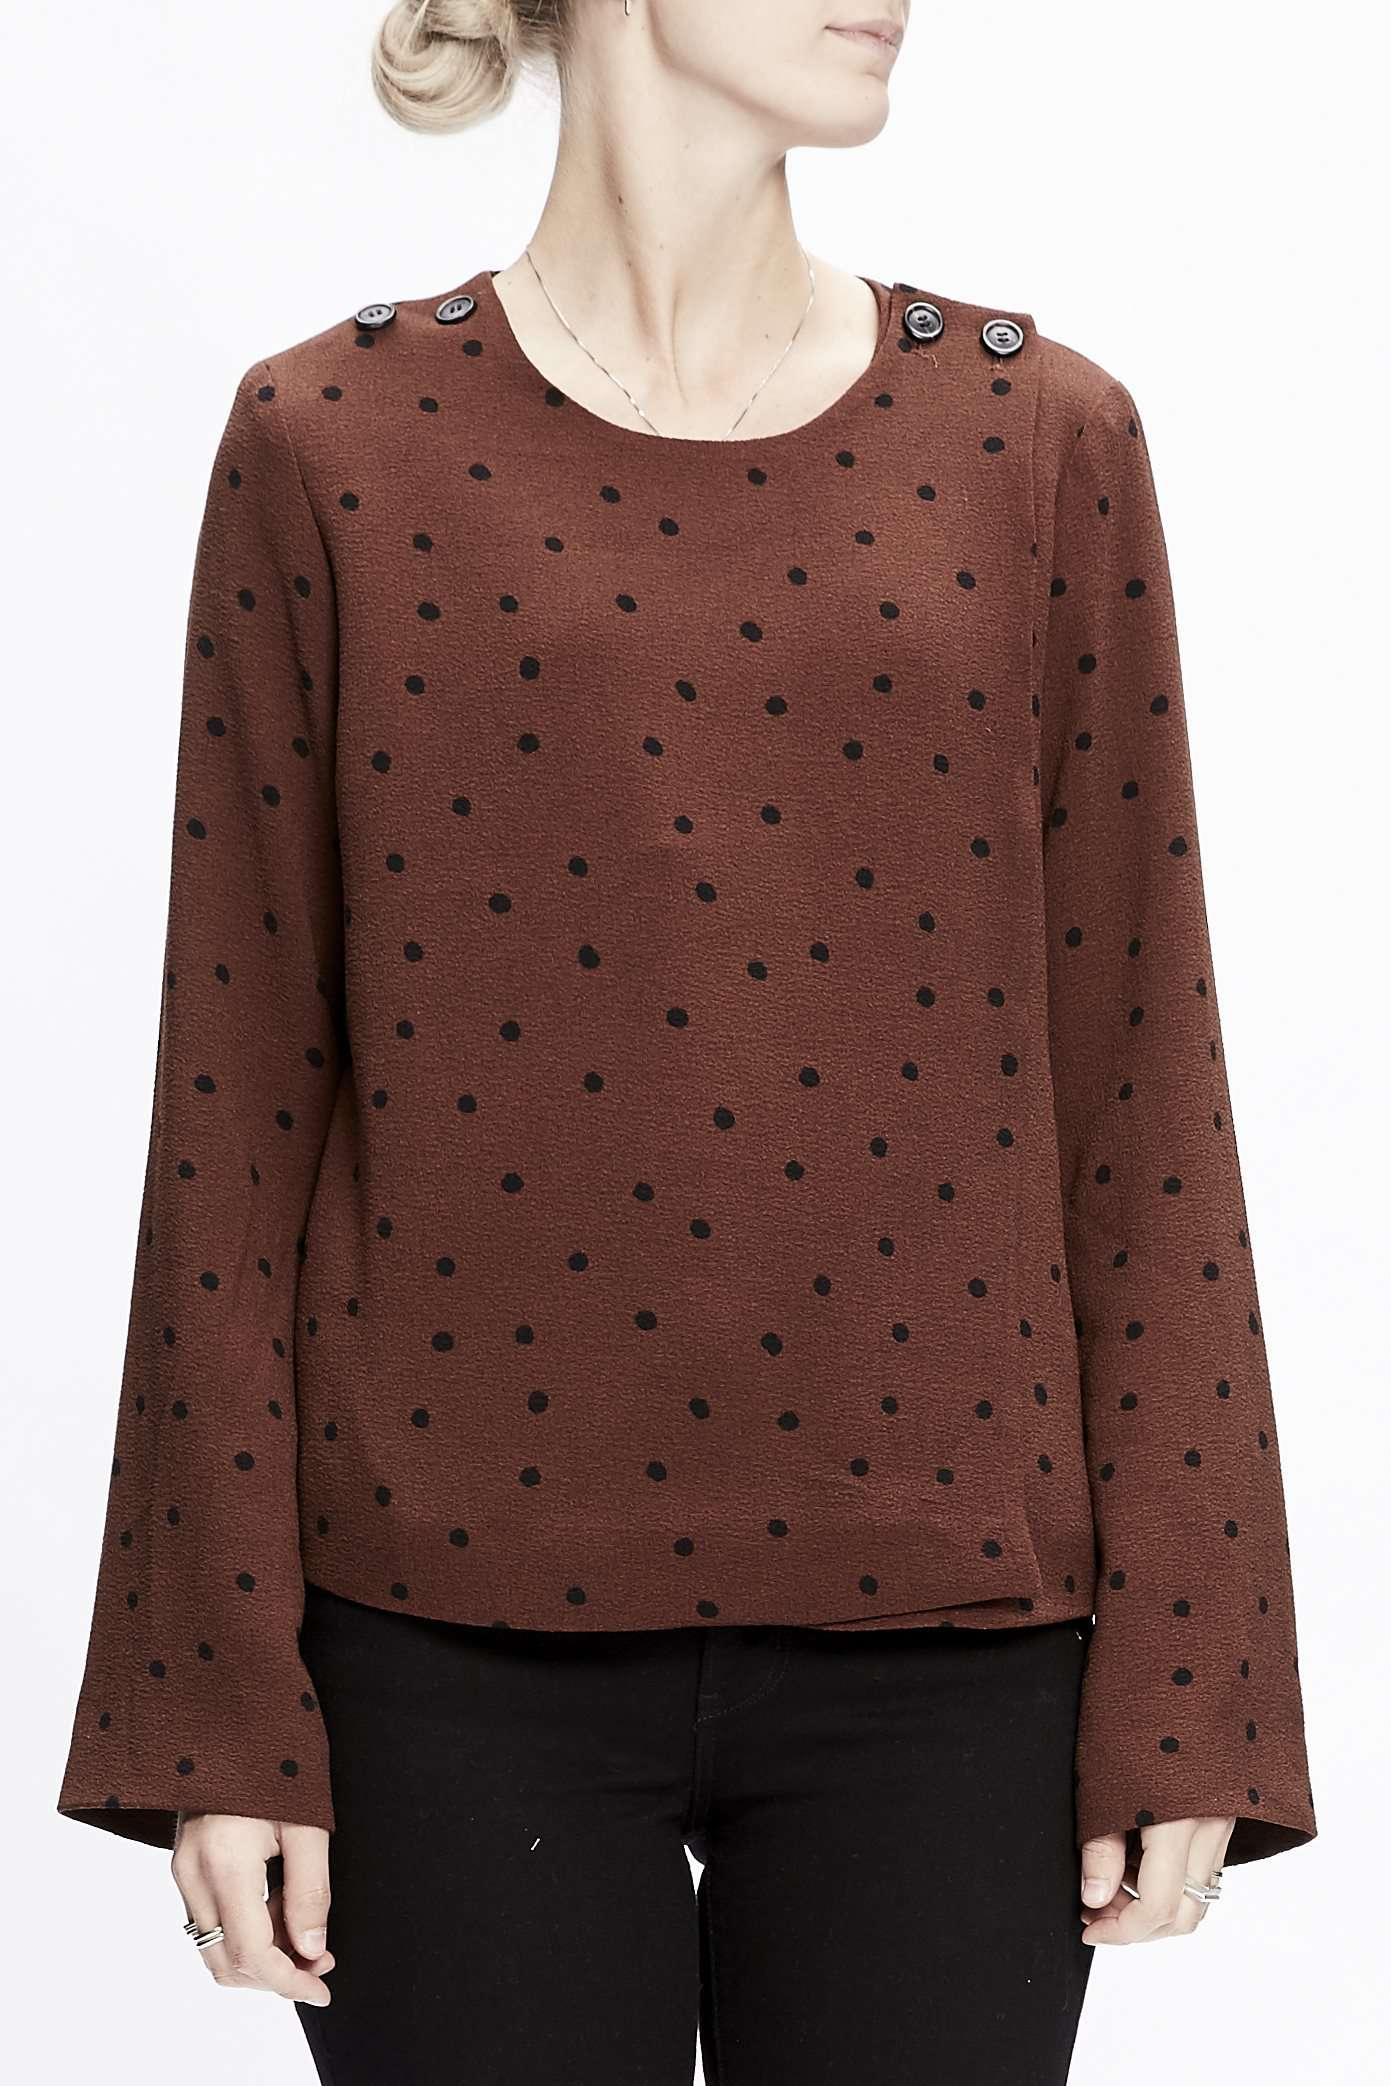 Image of   Karlie dot suit bluse - rust L